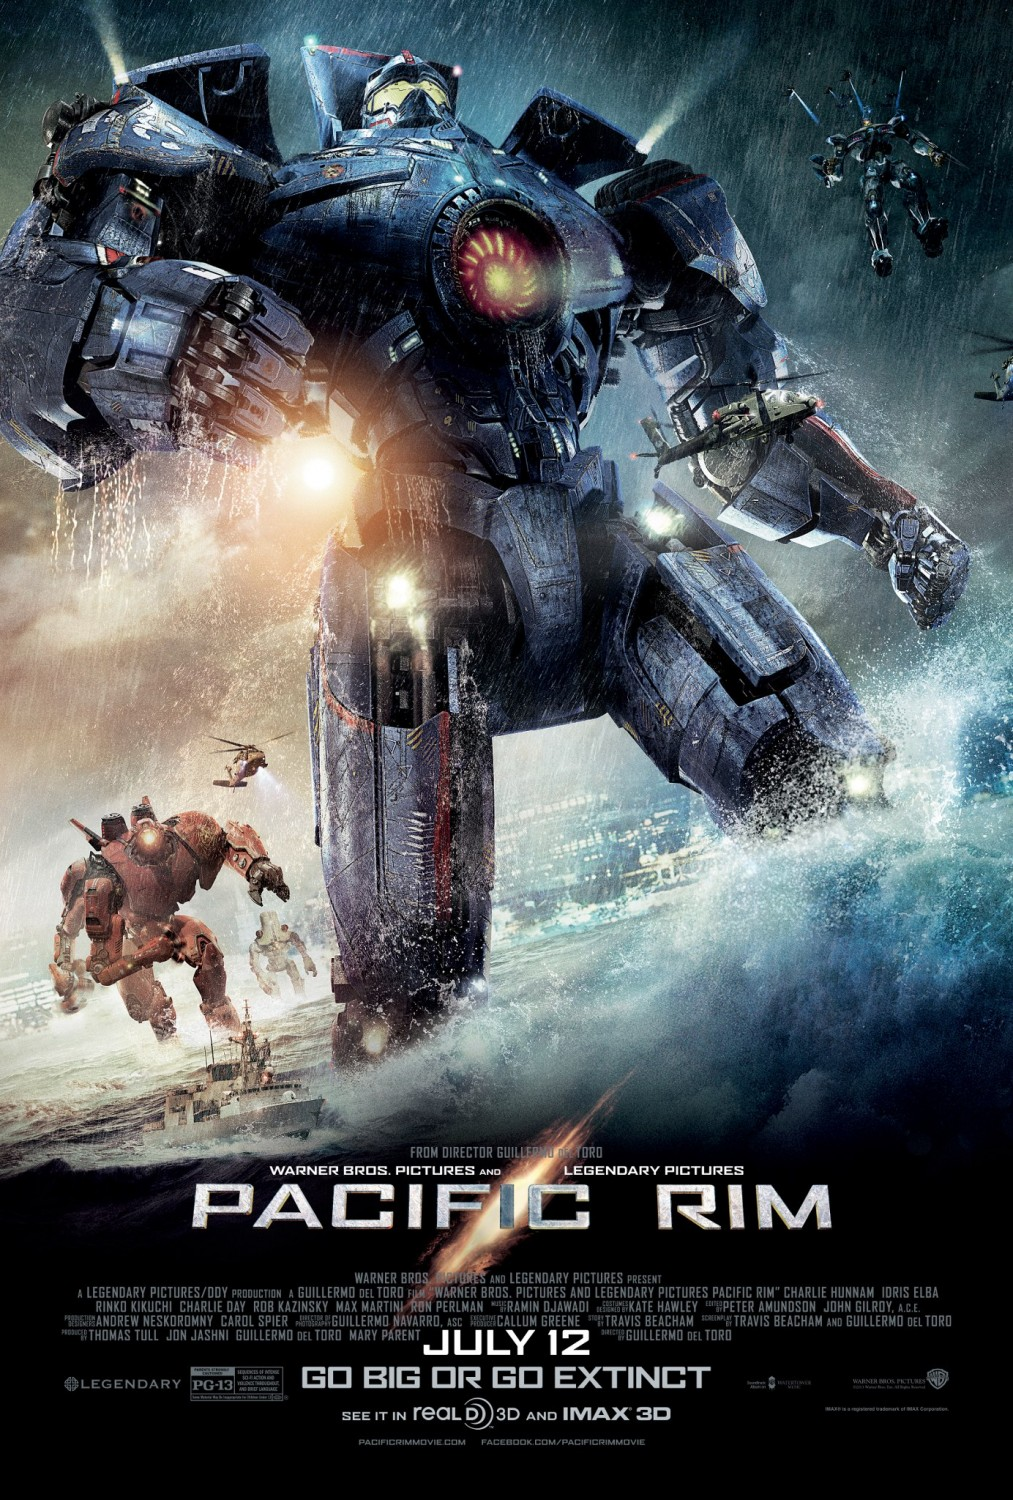 Pacific rim film pacific rim wiki fandom powered by wikia pacific rim film malvernweather Images